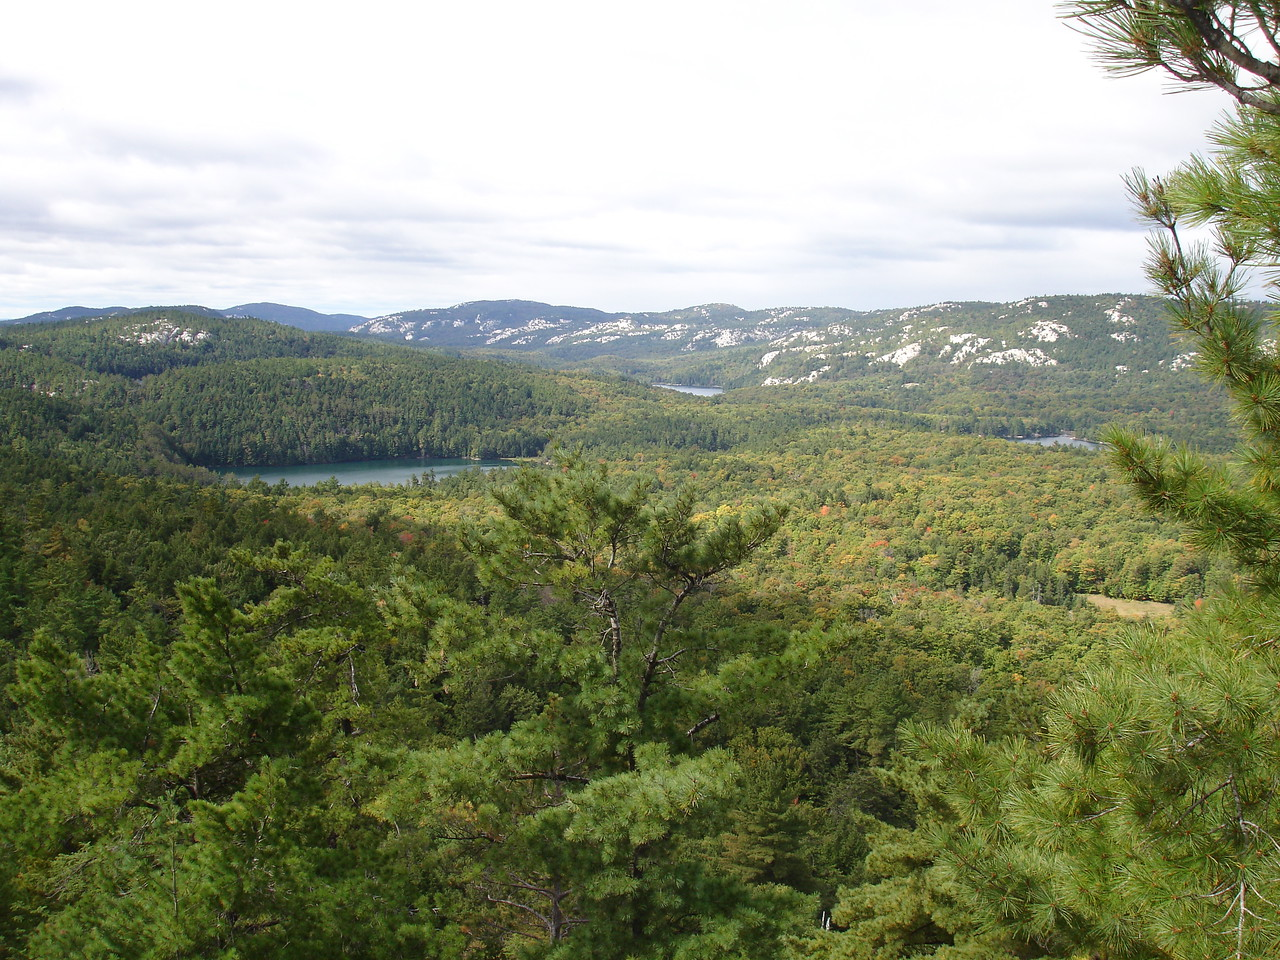 That line of hills is the Blue Ridge of the La Cloche Mountains